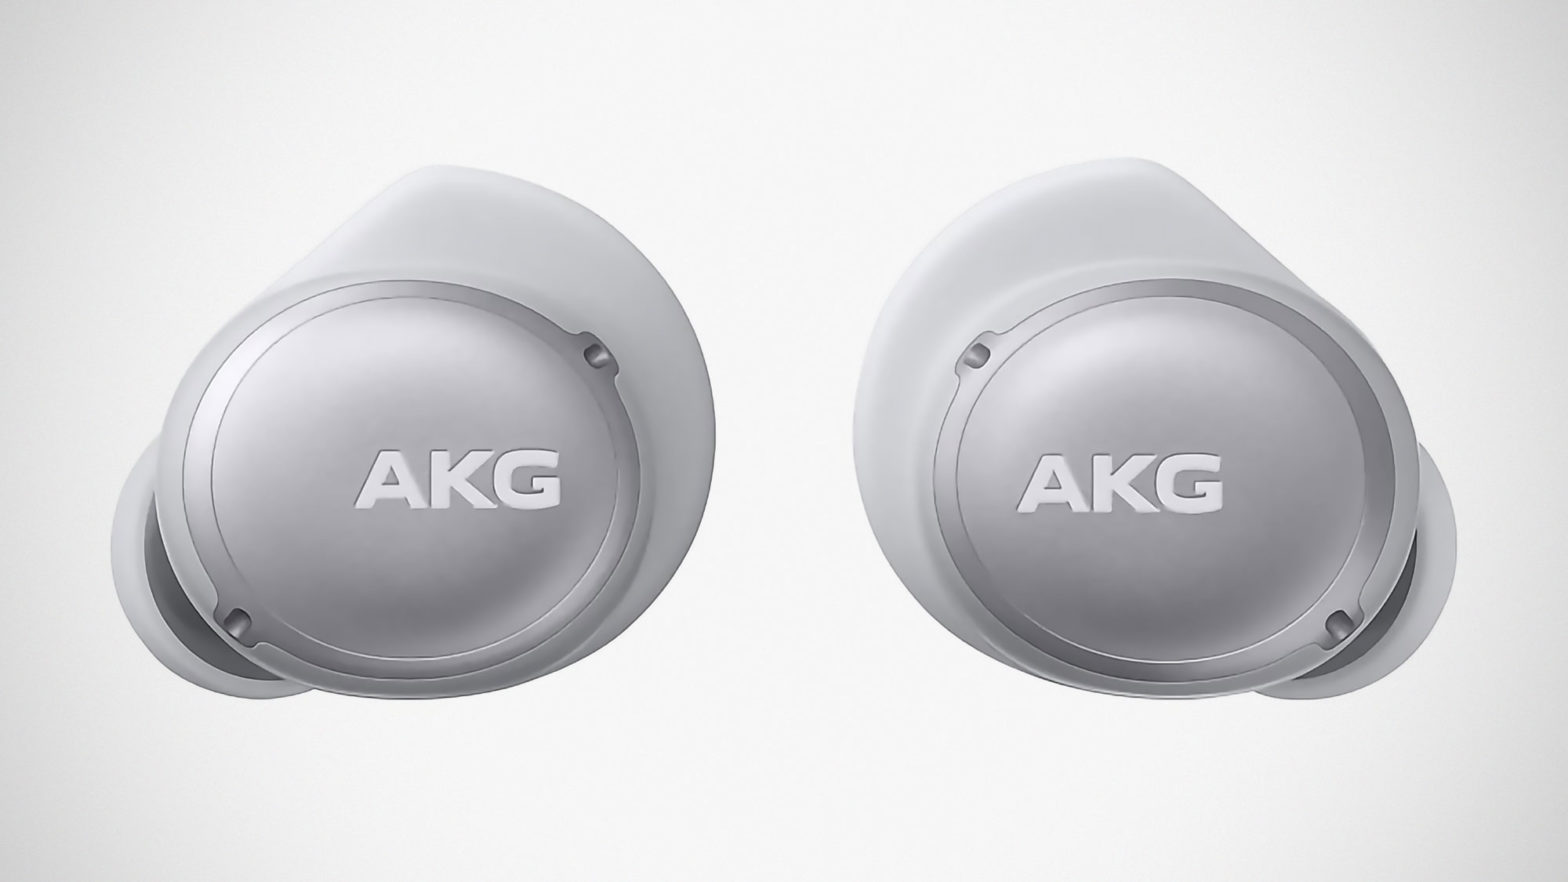 AKG N400 True Wireless Earbuds South Korea